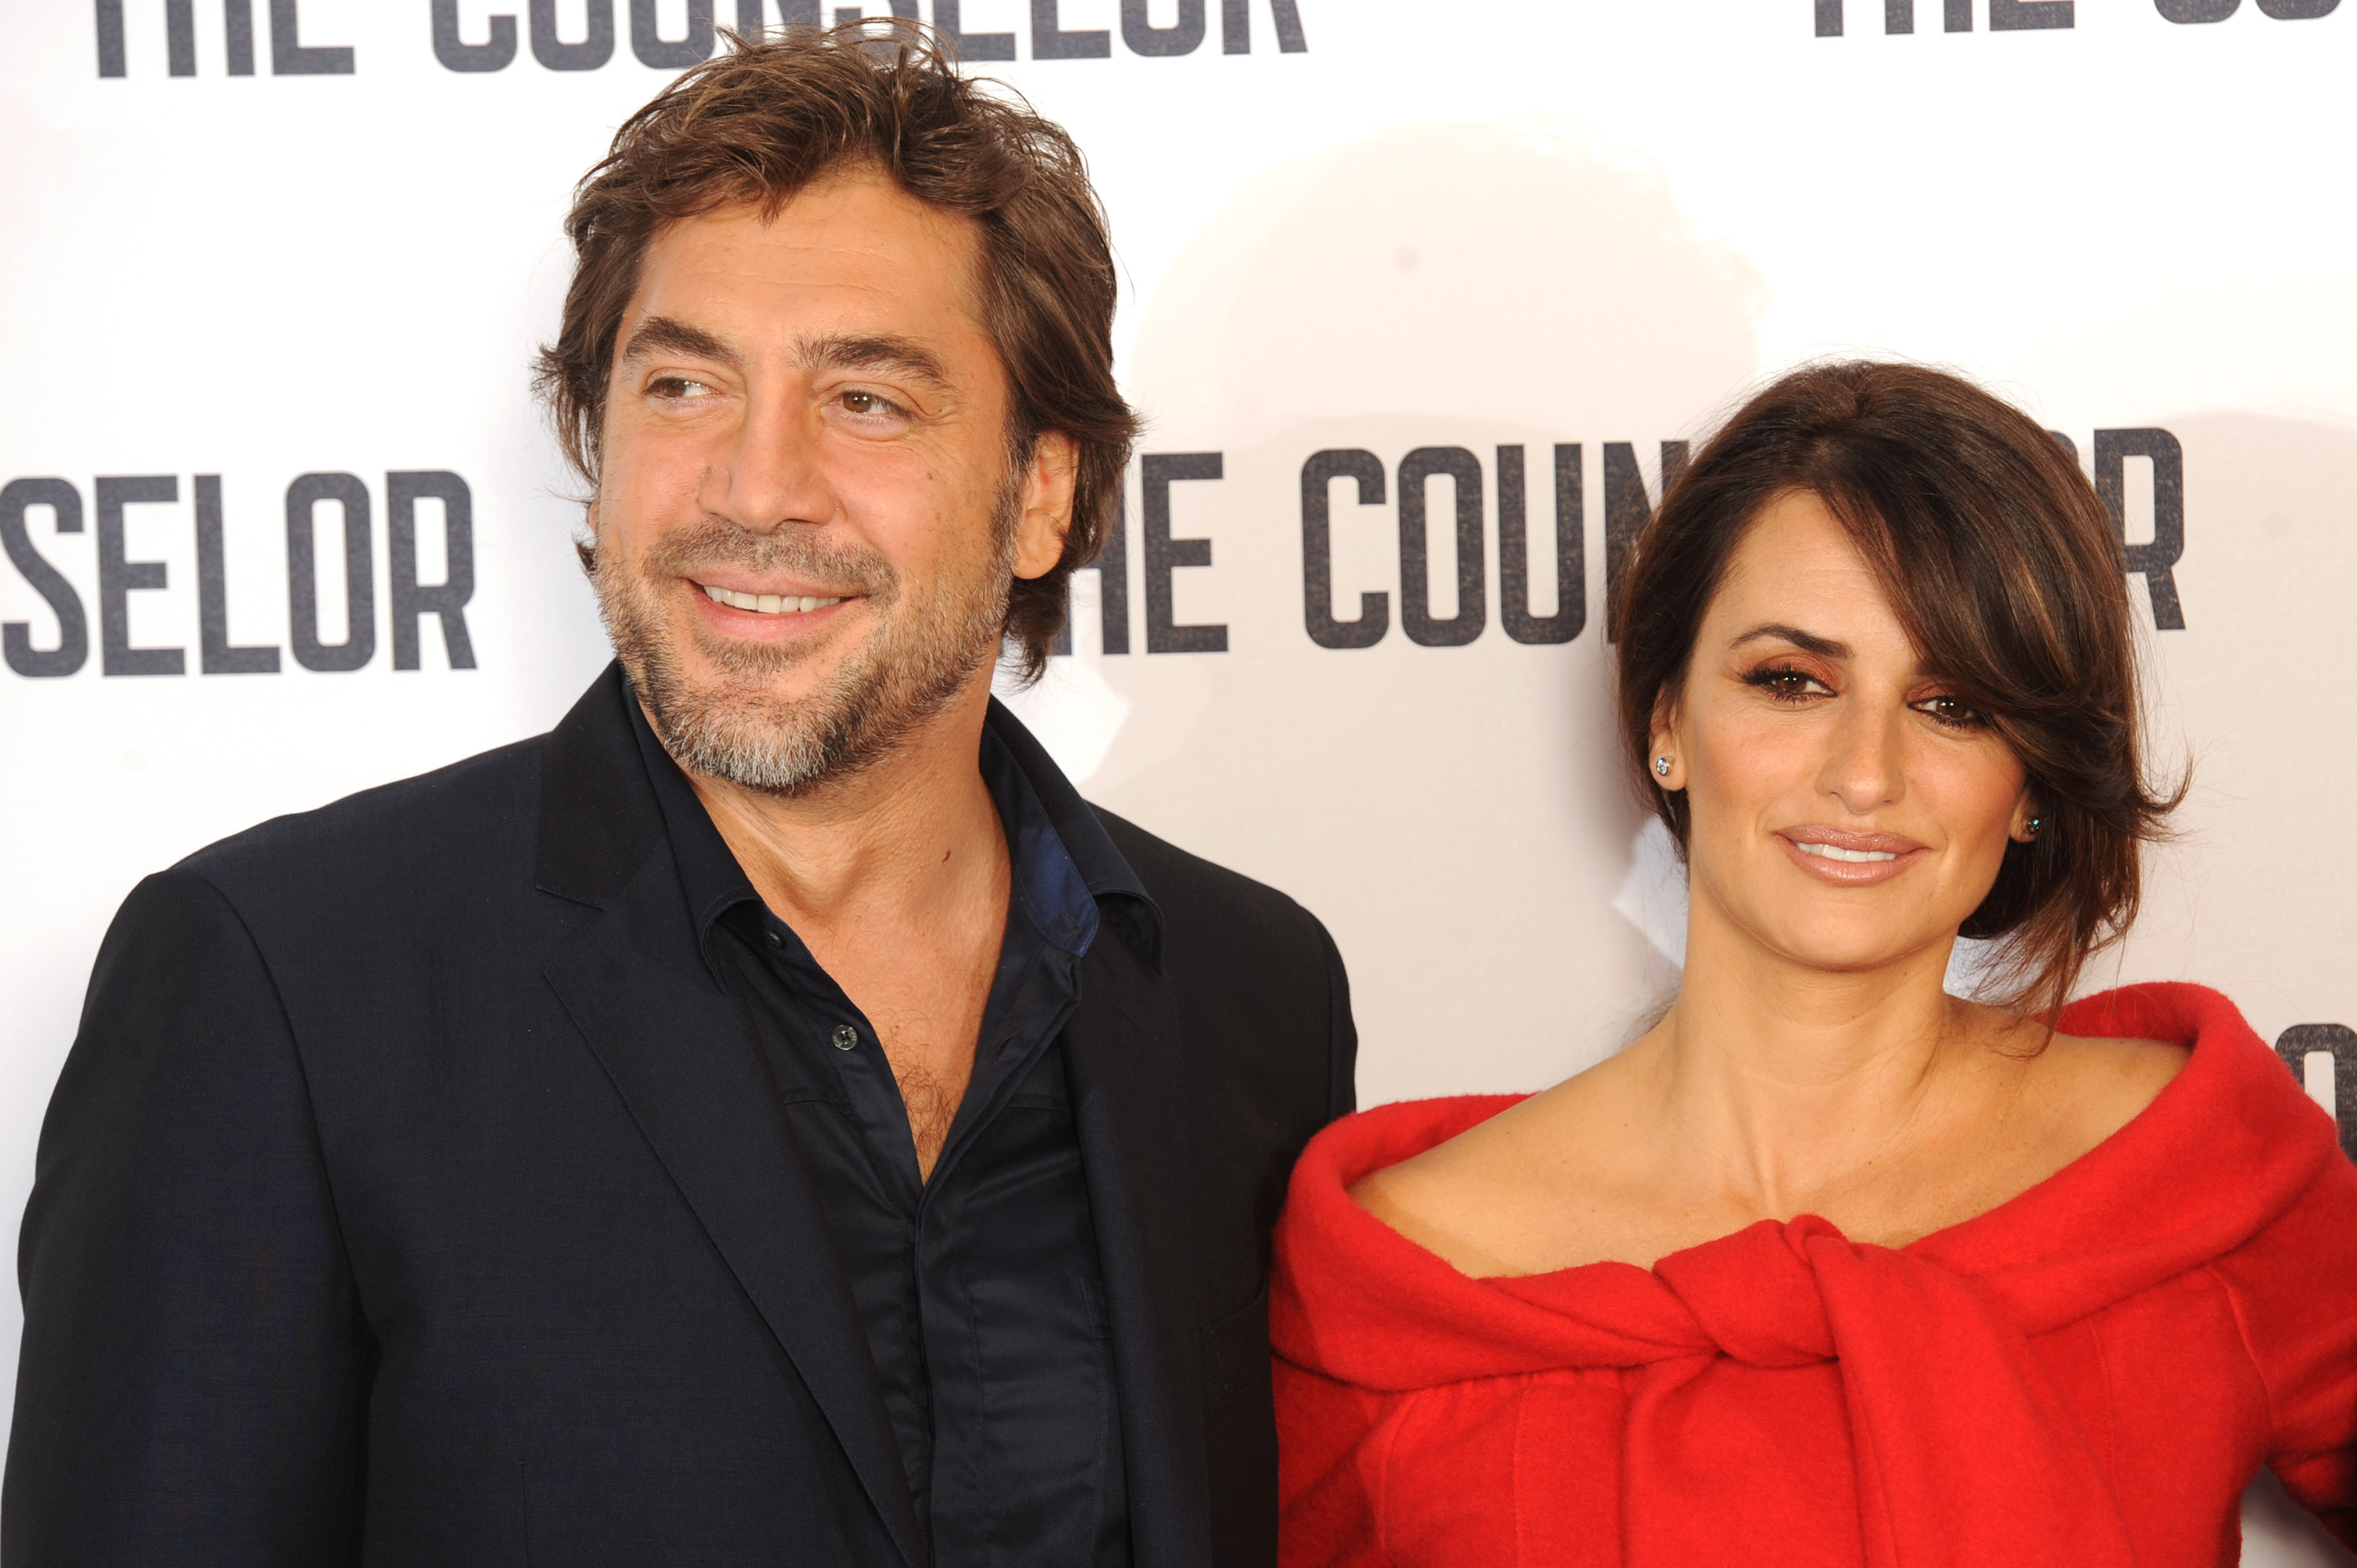 Javier Bardem and Penelope Cruz attend a photocall for 'The Counselor' at The Dorchester on October 5, 2013 in London, England.